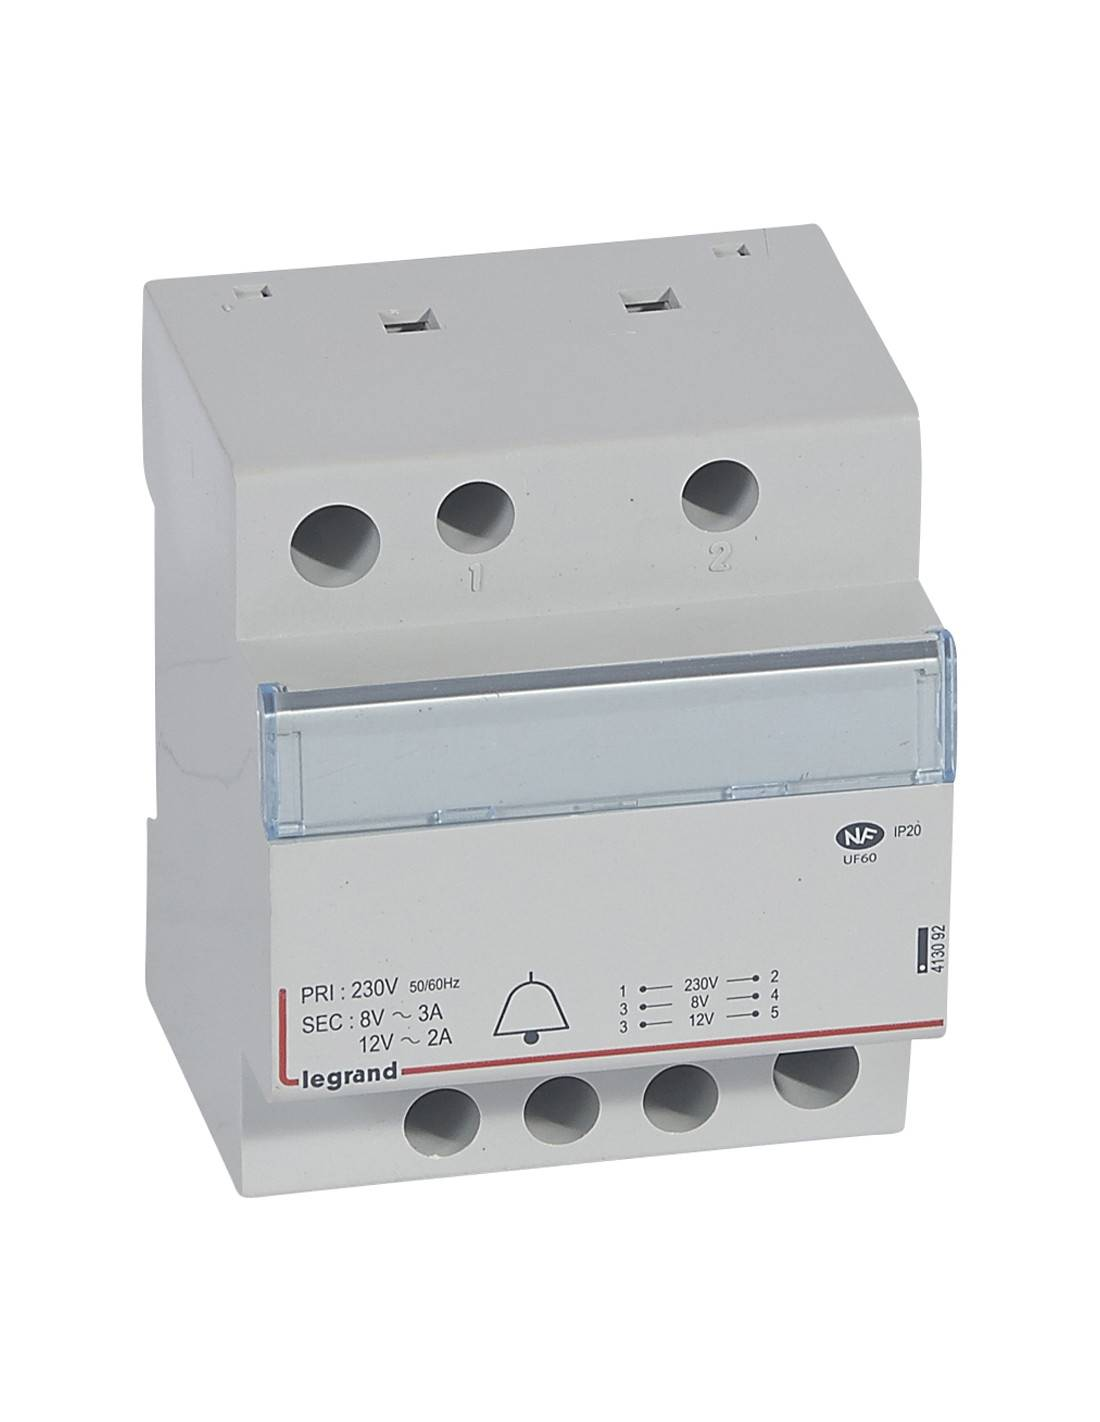 LEGRAND - Transformateur pour sonnerie - 230 V / 12-8 V - 24 VA - 4 modules - 413092